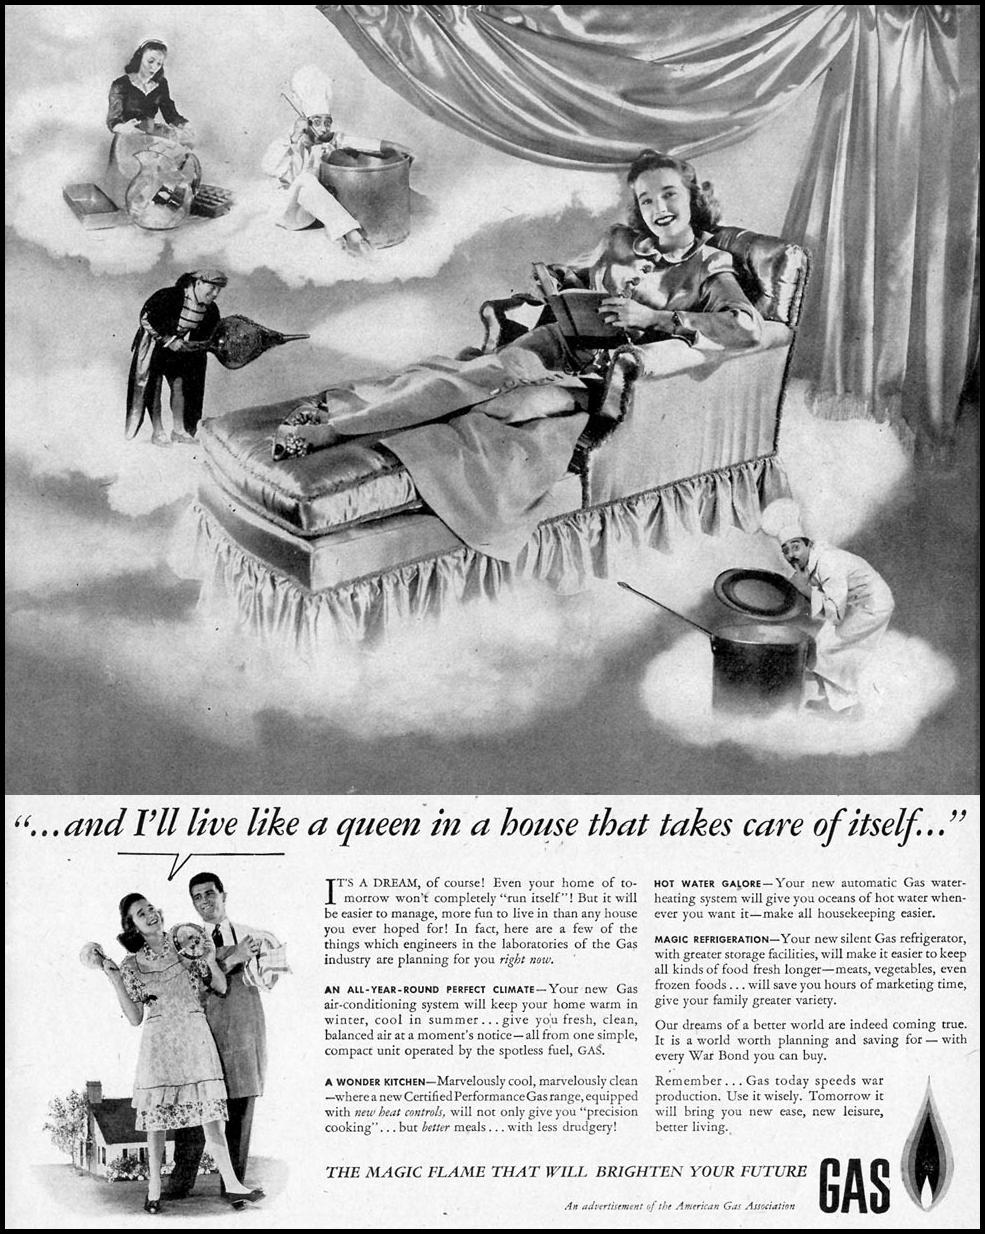 NATURAL GAS APPLIANCES LIFE 02/28/1944 p. 21